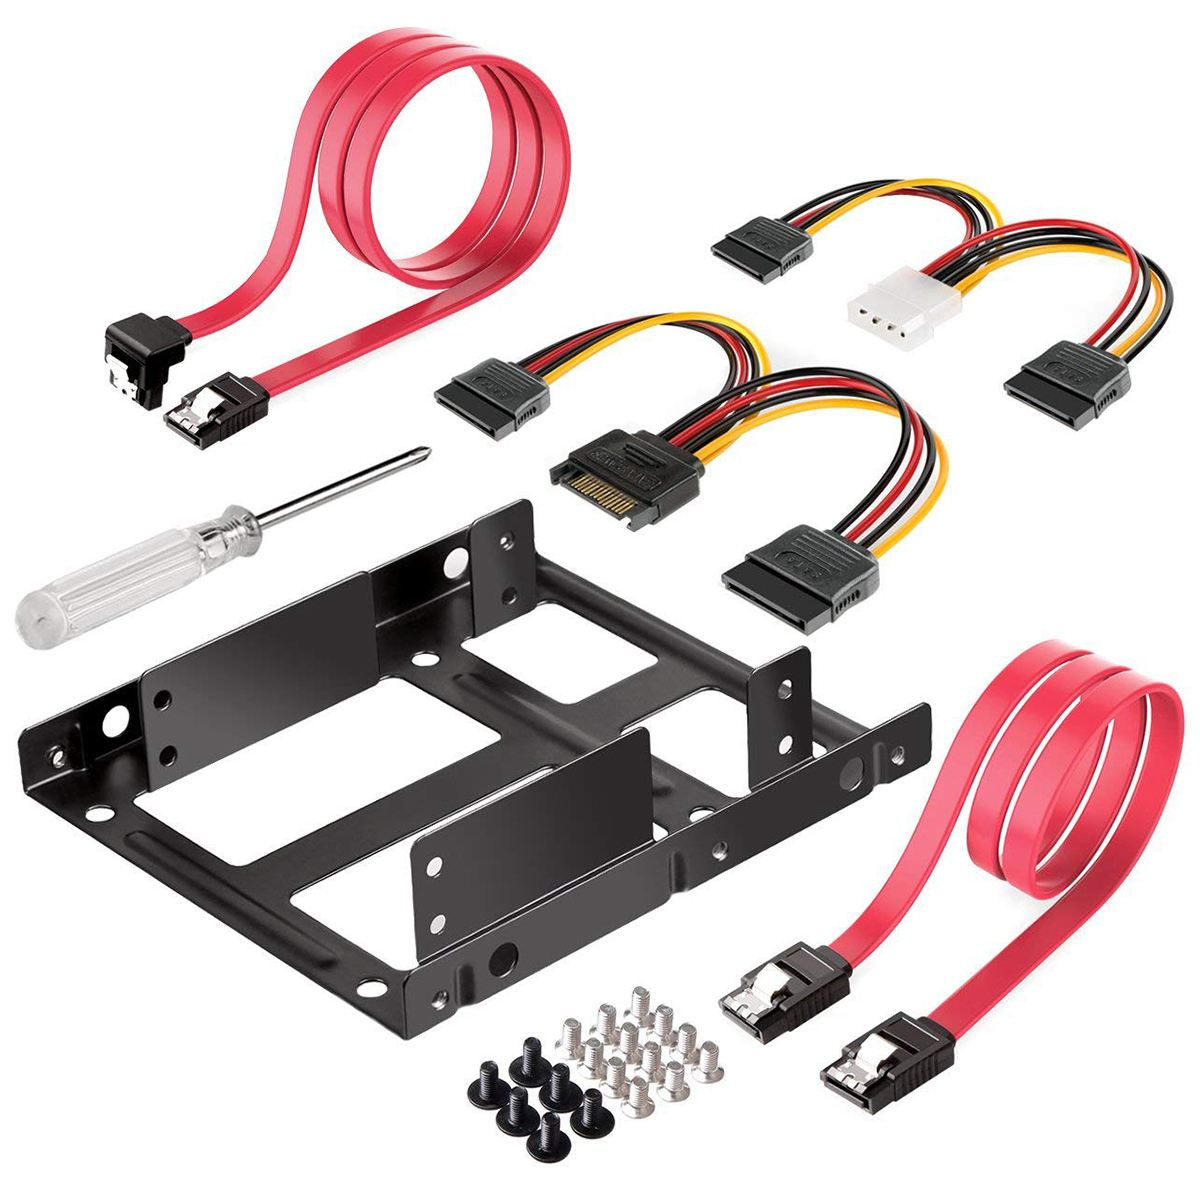 2X 2.5 inch SSD to 3.5 inch Internal Hard Disk Drive Mounting Kit Bracket SATA Data Cables and Power Cables Included-Hot